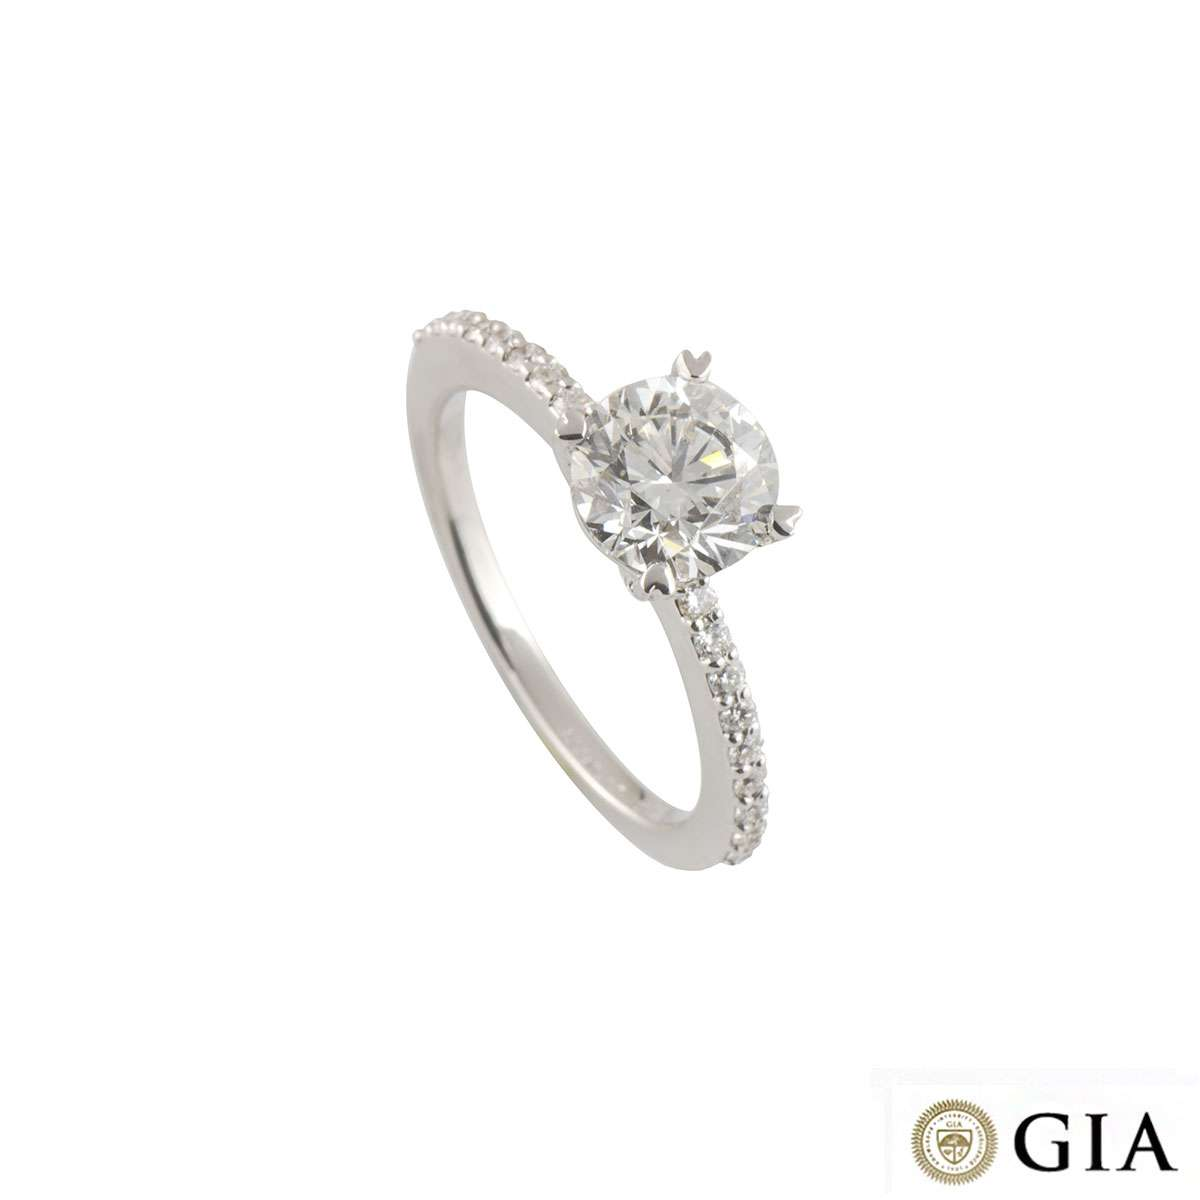 White Gold Diamond Ring 1.51ct G/VS2